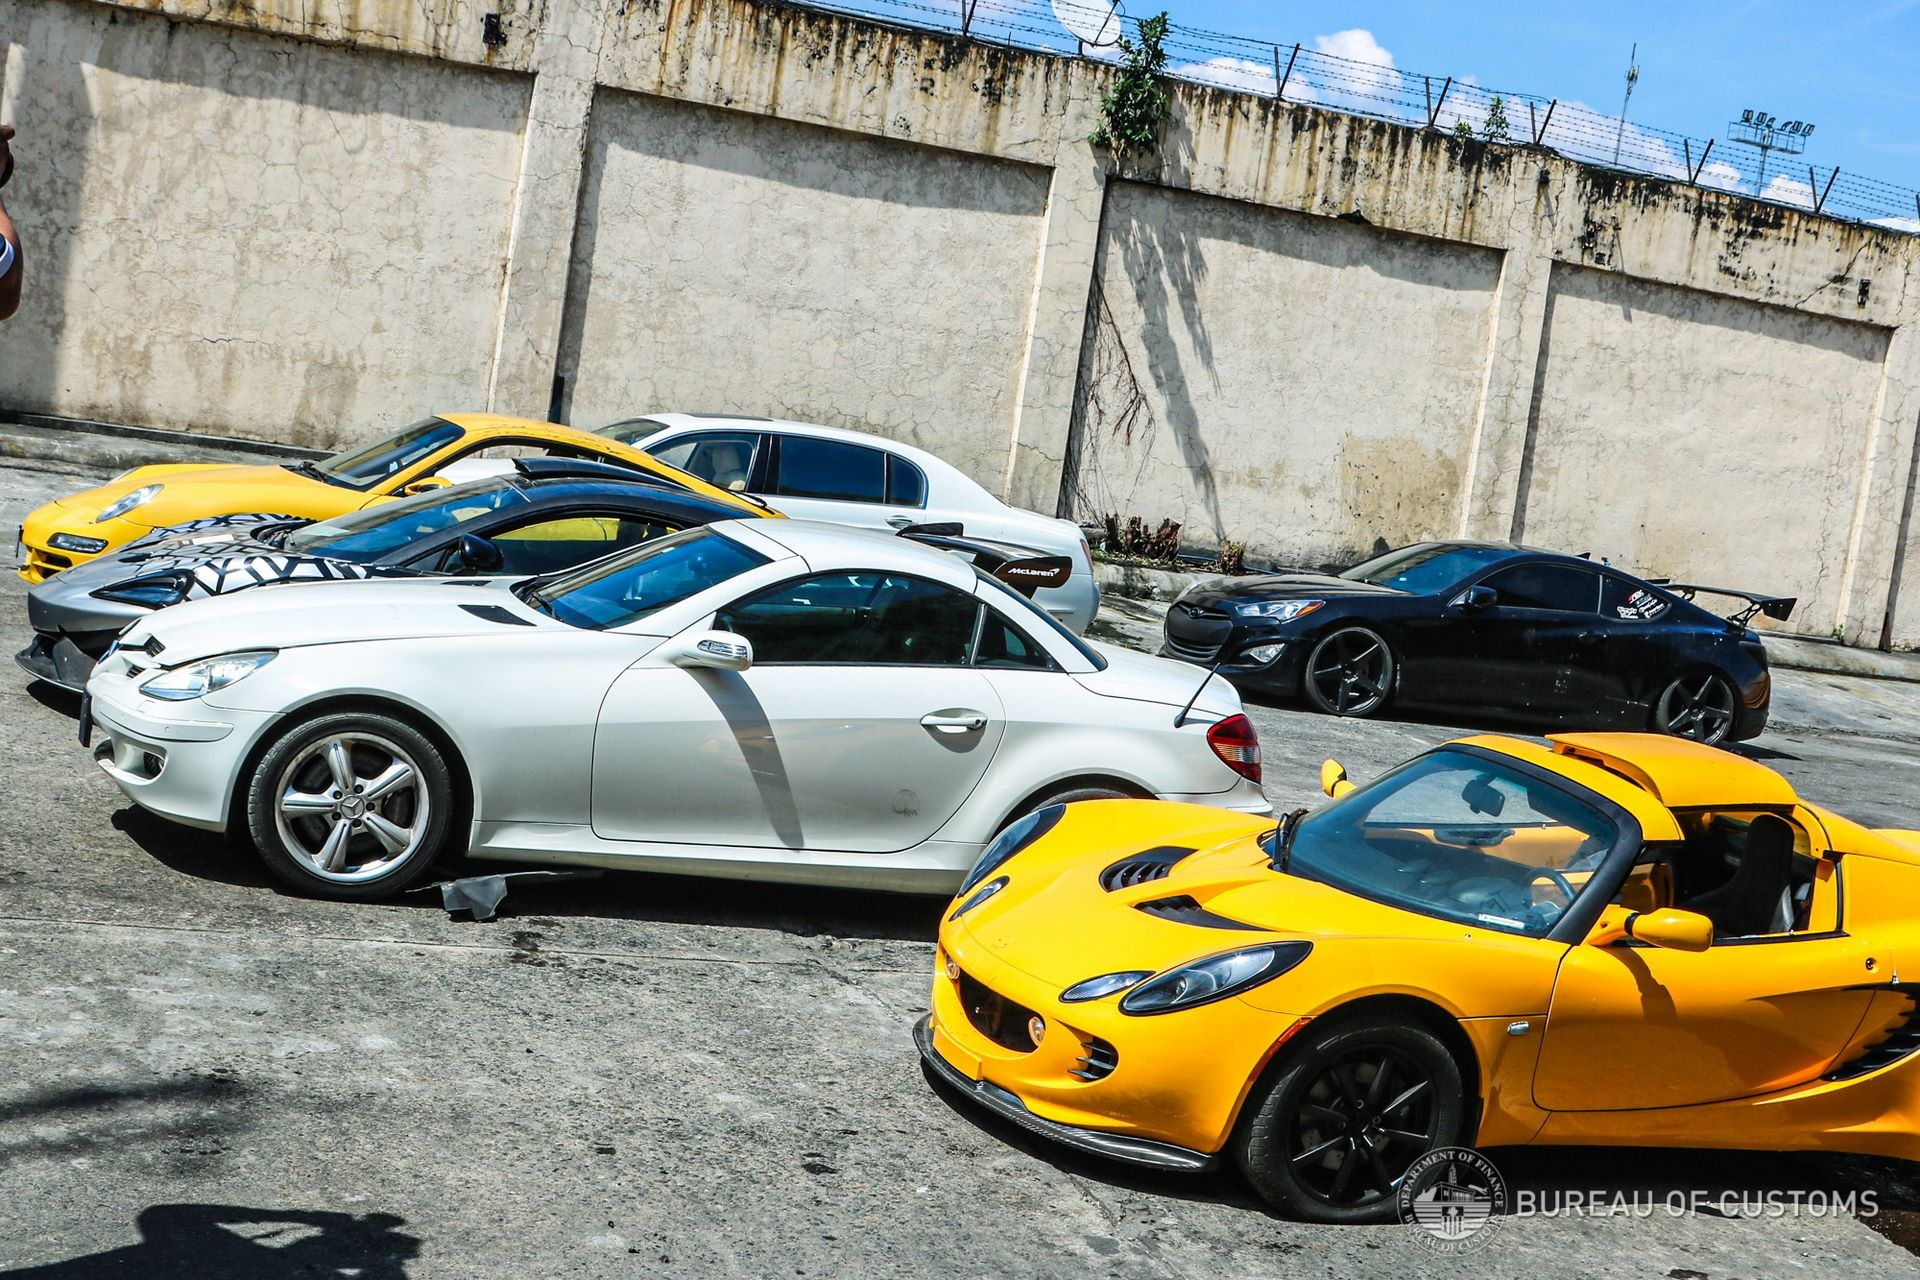 the-philippines-destroys-illegally-imported-cars-12